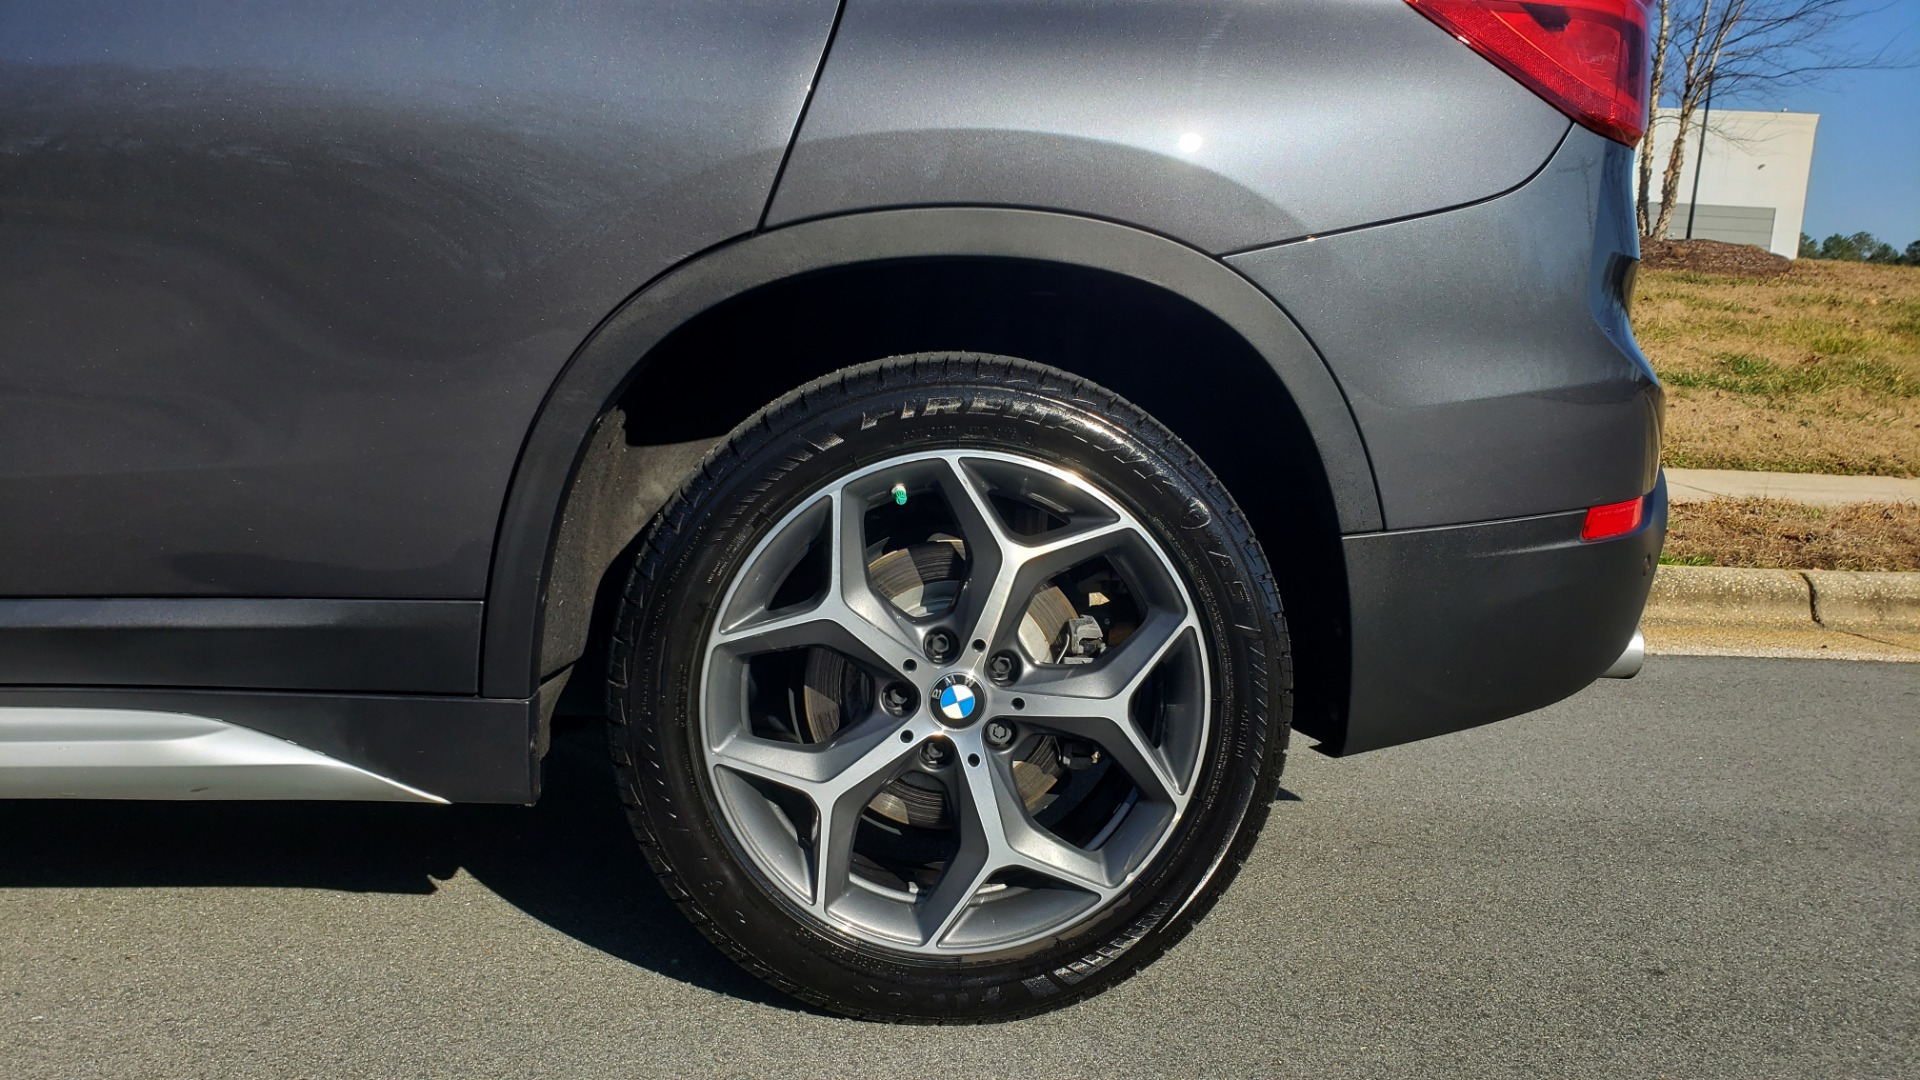 Used 2017 BMW X1 XDRIVE28I / PREM / TECH / DRVR ASST PLUS / COLD WTHR / REARVIEW for sale $26,995 at Formula Imports in Charlotte NC 28227 81